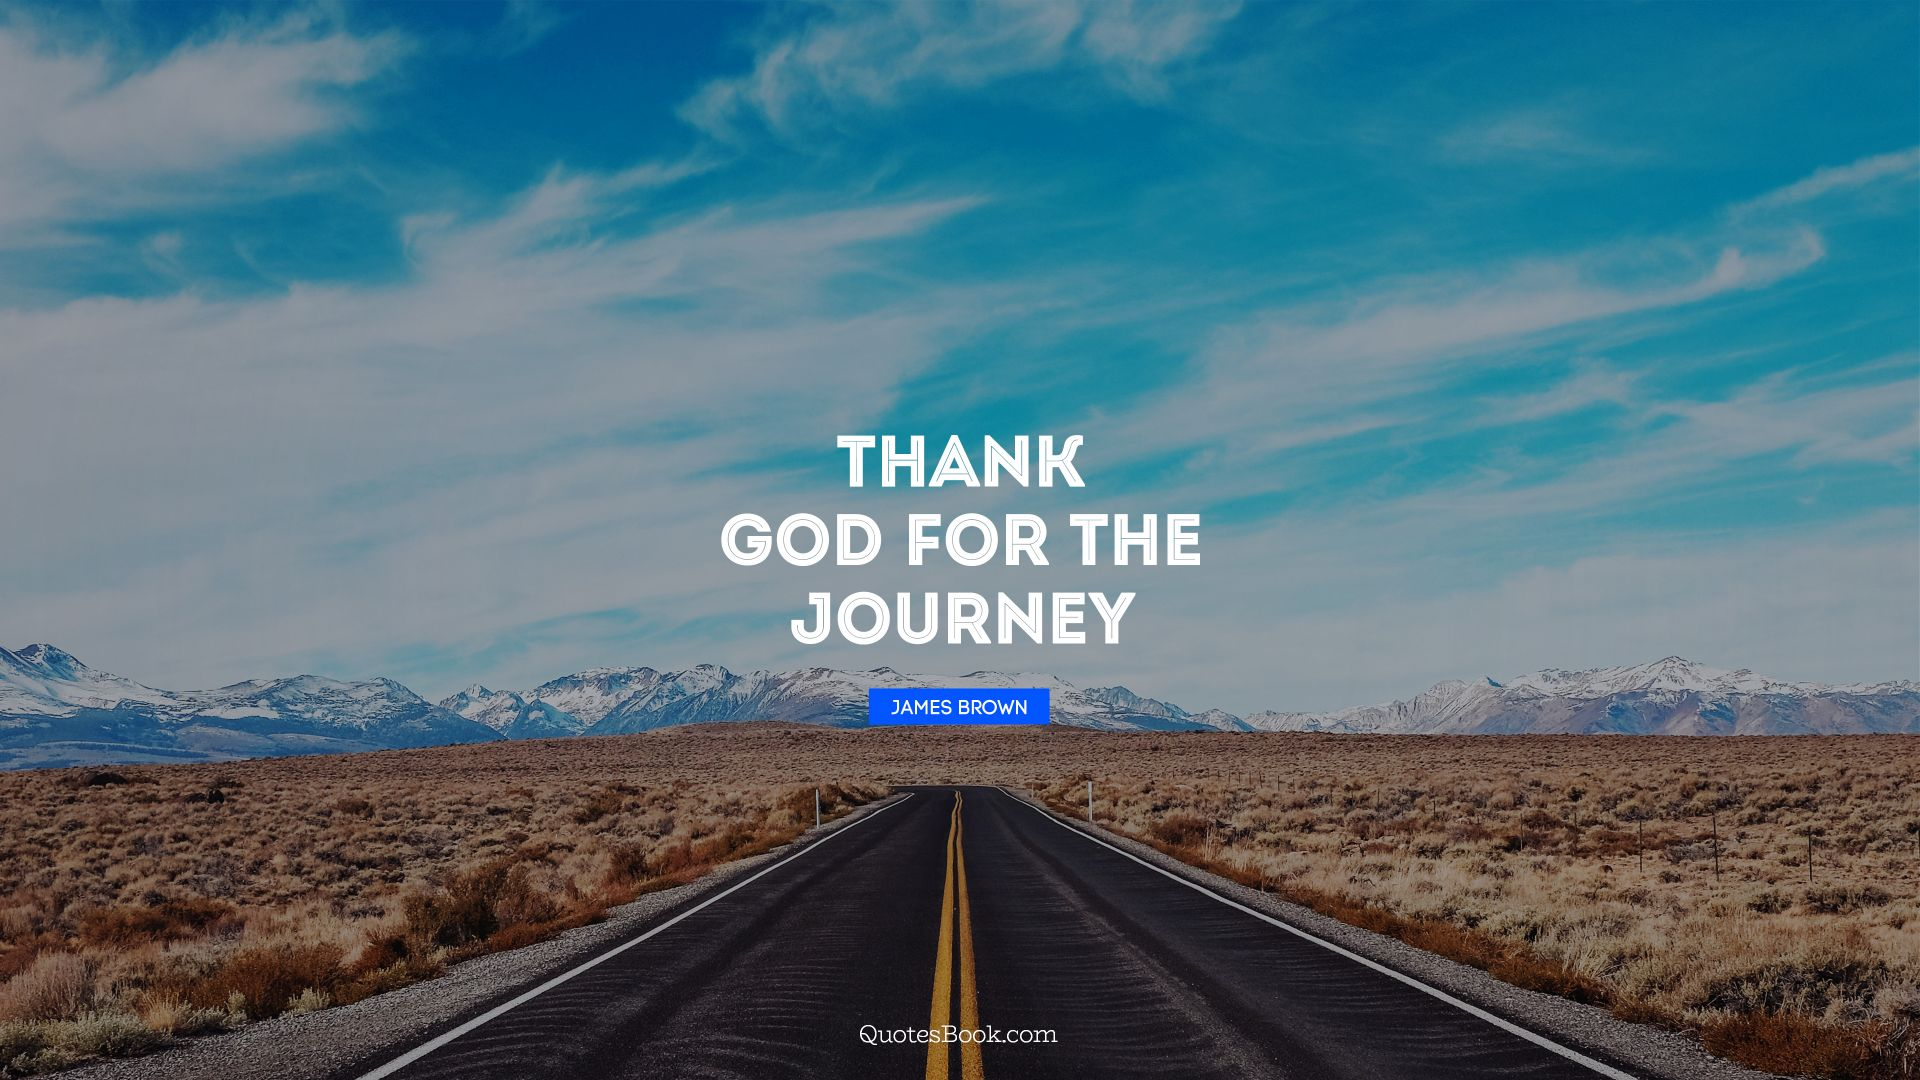 Thank God for the journey. - Quote by James Brown